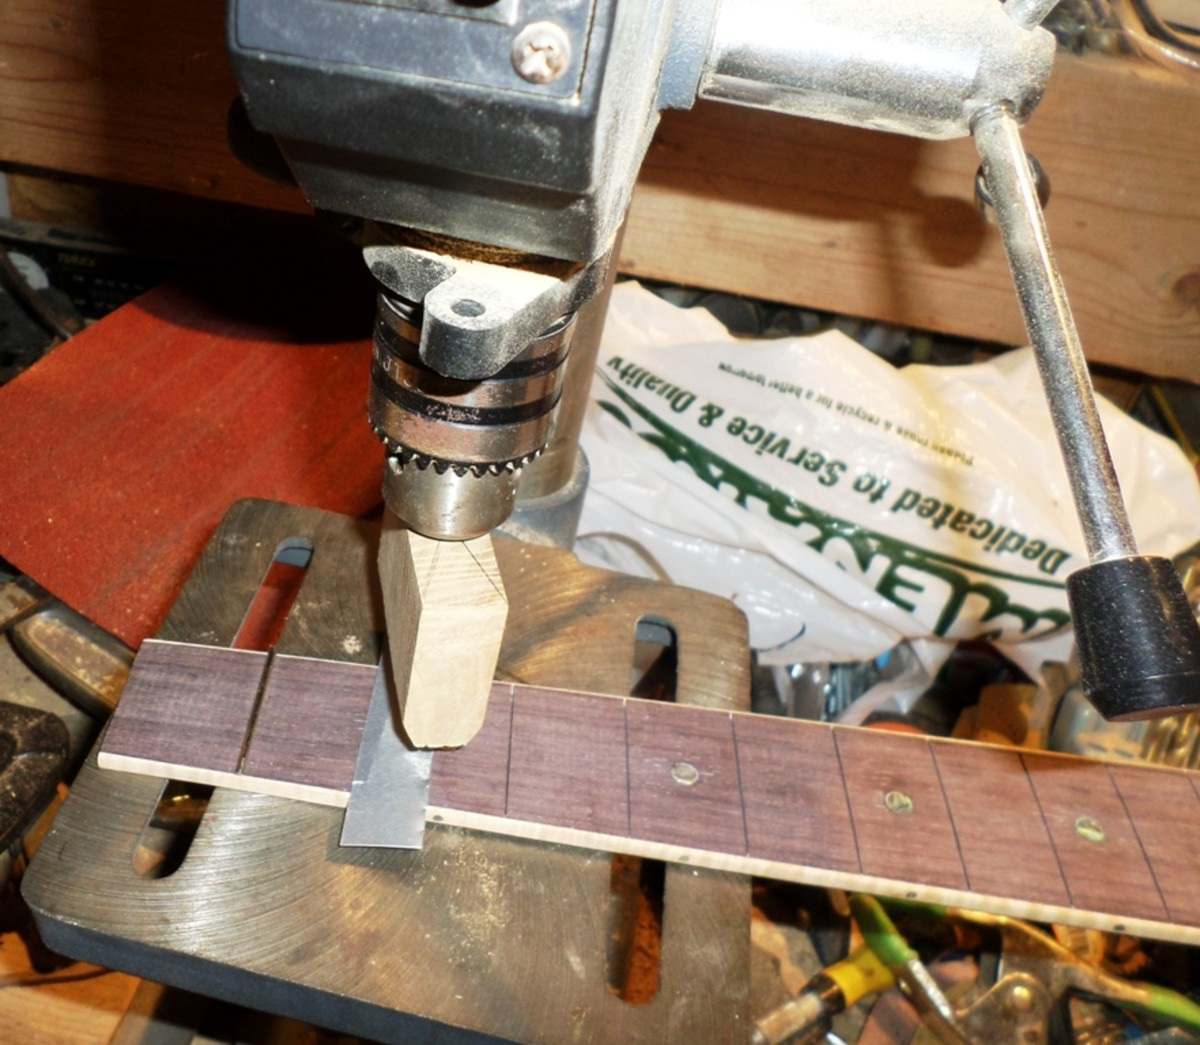 Pressing with a drill press.